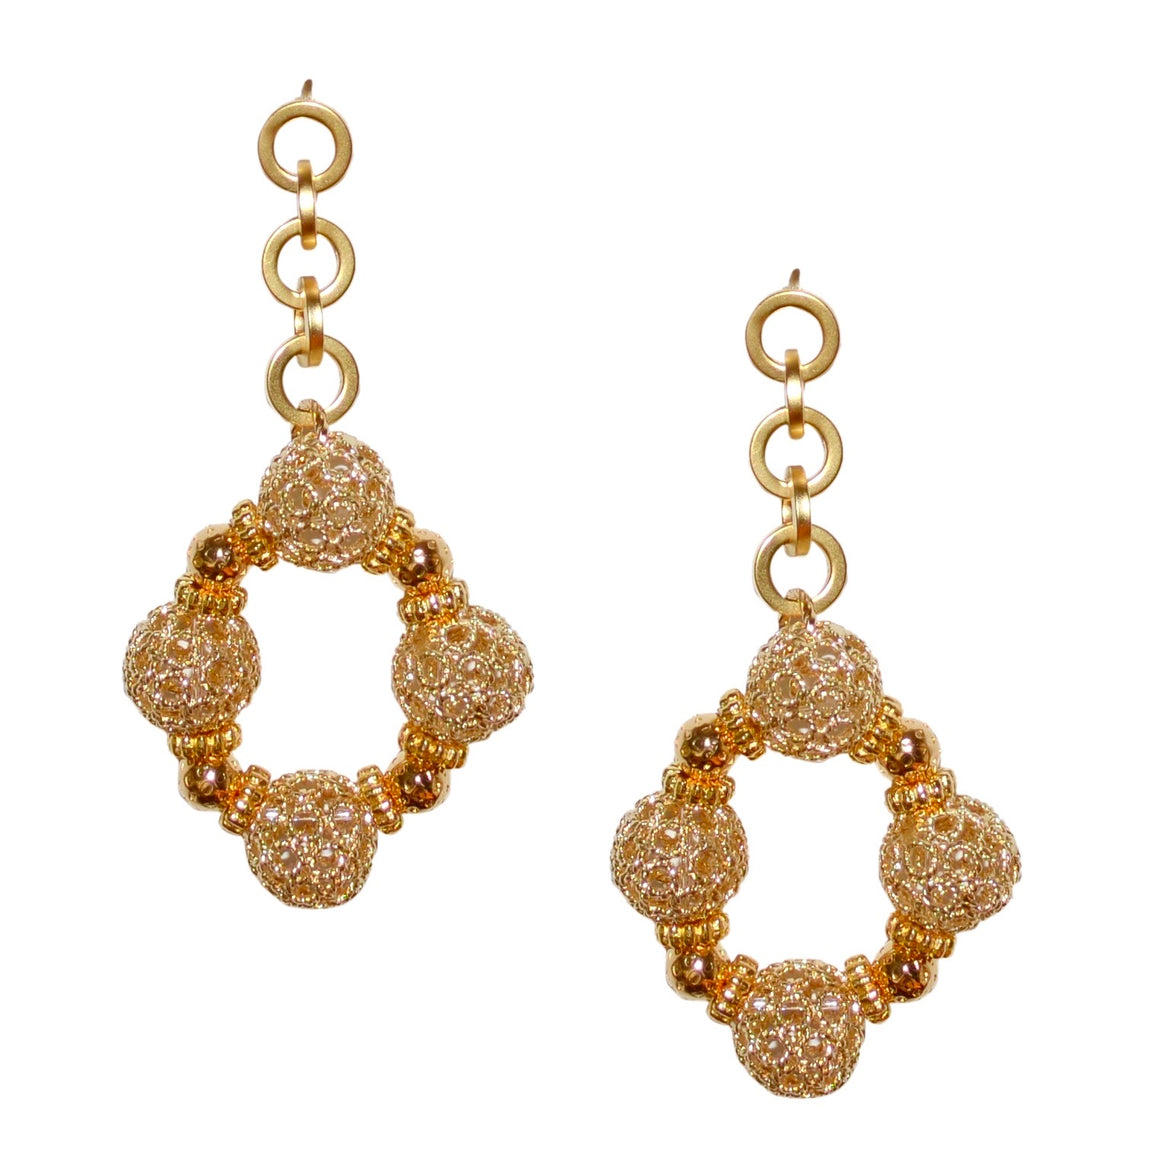 SANDY TEXTURED DROP EARRING